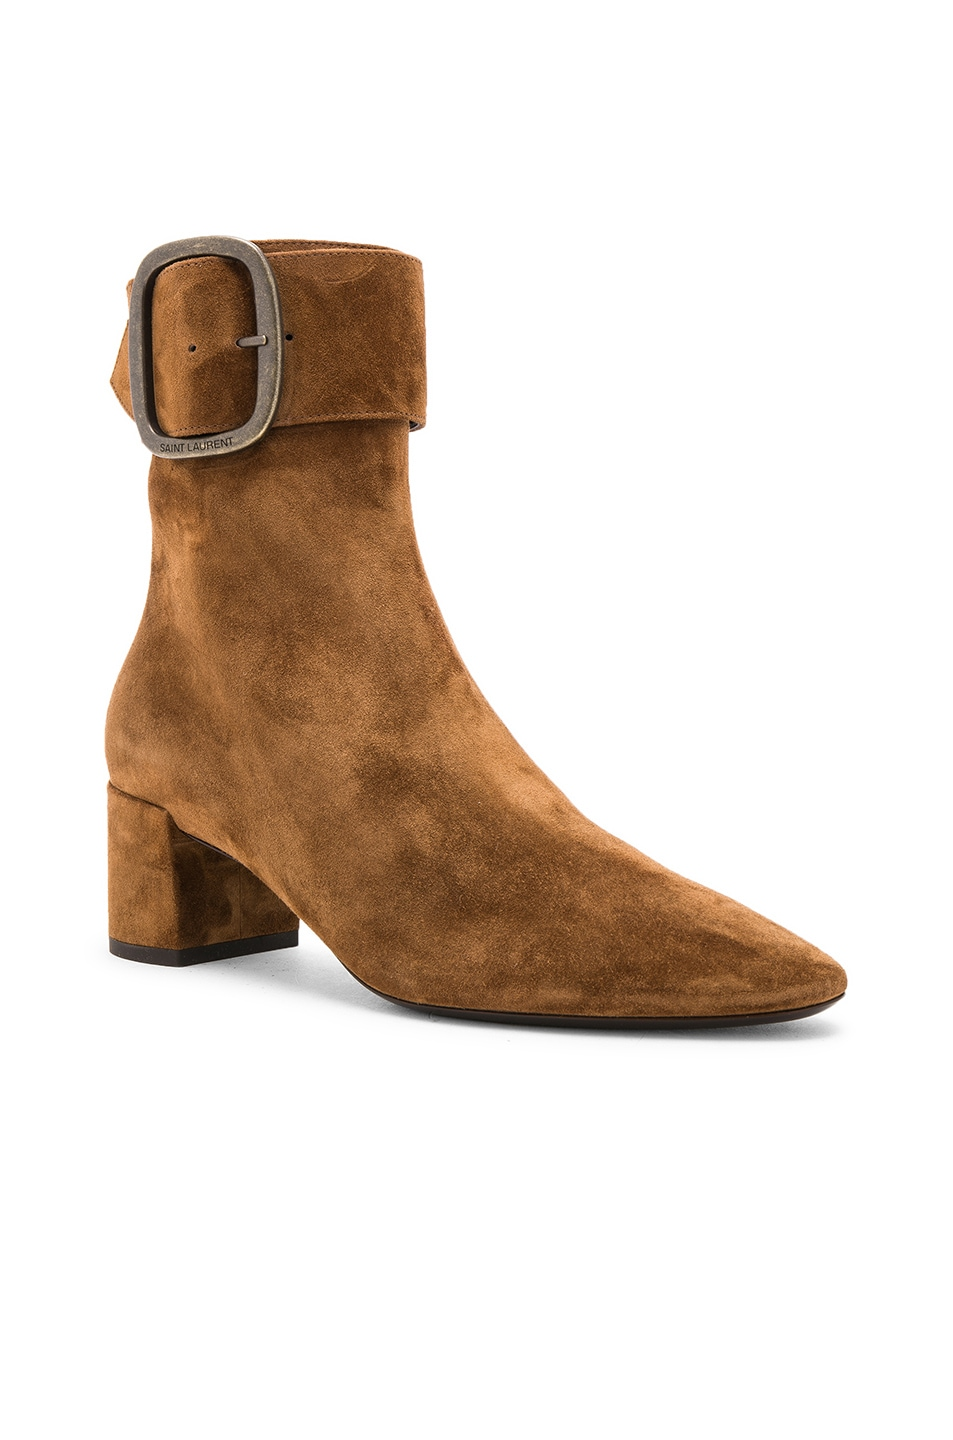 Image 2 of Saint Laurent Suede Joplin Buckle Ankle Boots in Caramel